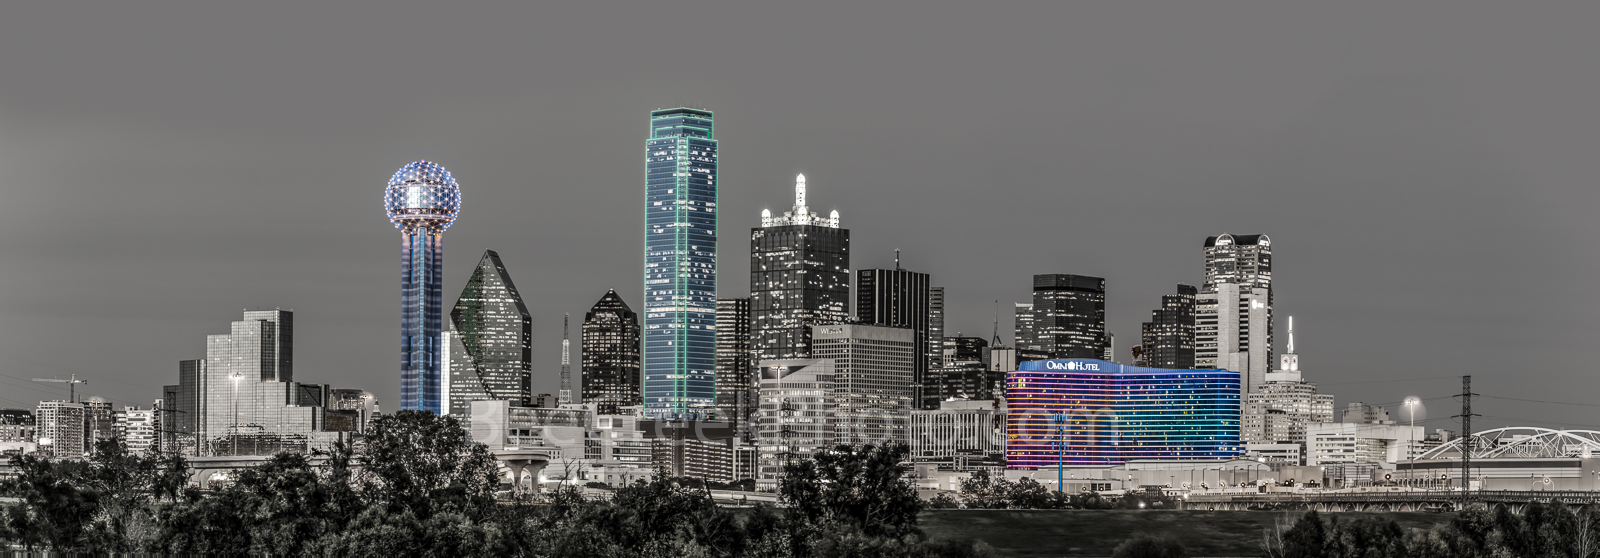 dallas skyline, black and white, touch of color, landmark, reunion tower, tower of america, omni, pop of color, cityscape, buildings, downtown, dallas, bw, , photo